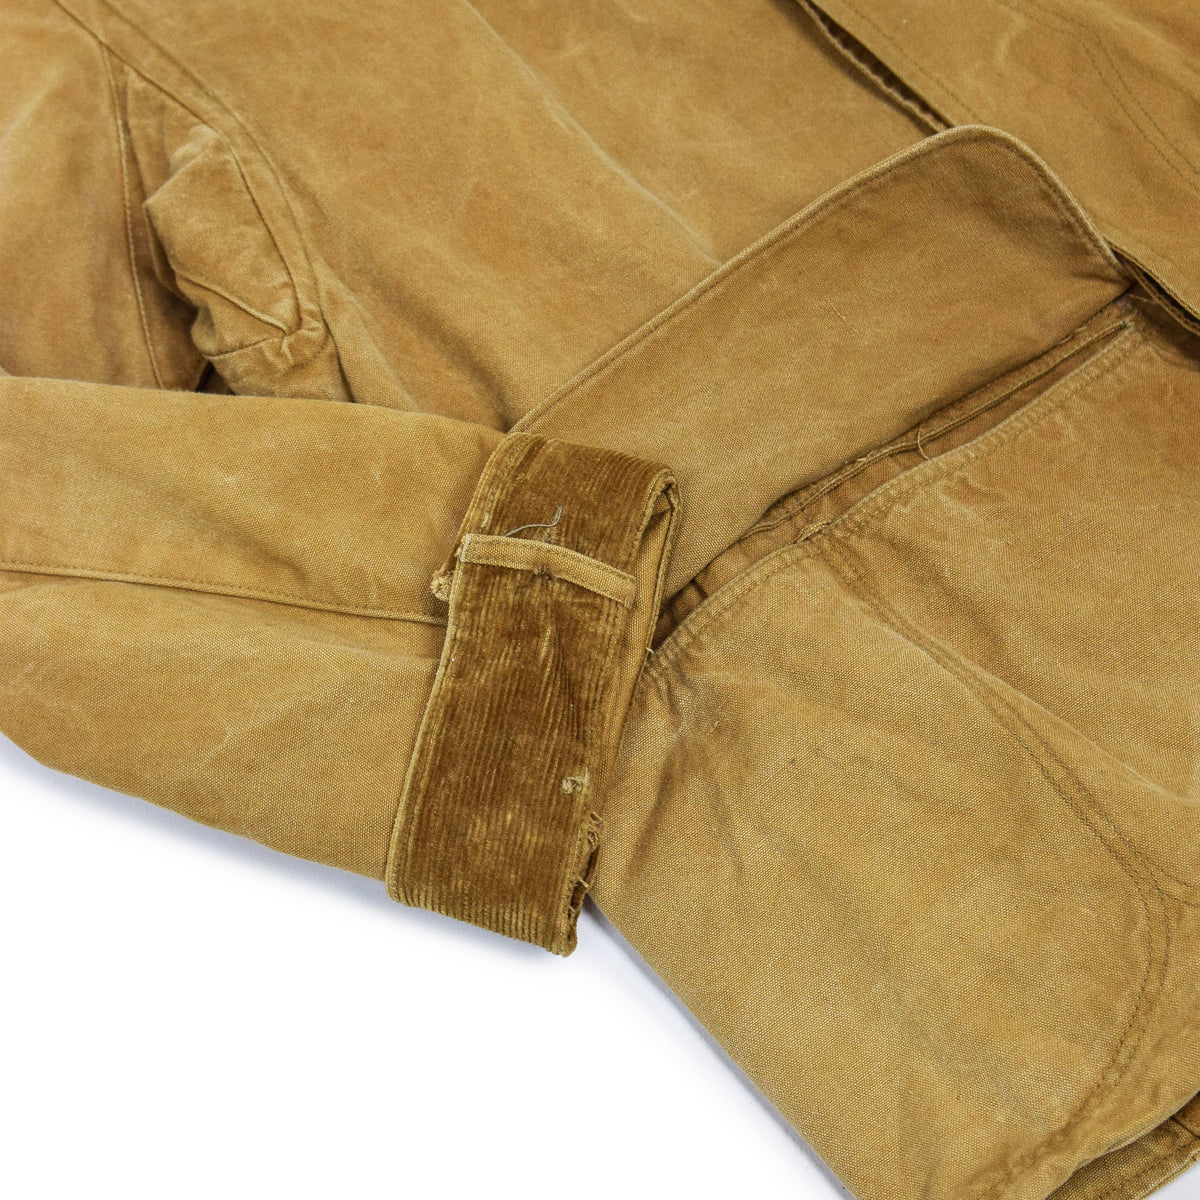 Vintage 1930s Mohawk Duxbak NY Hunting Tan Canvas Shooting Field Jacket S / M CORD CUFF